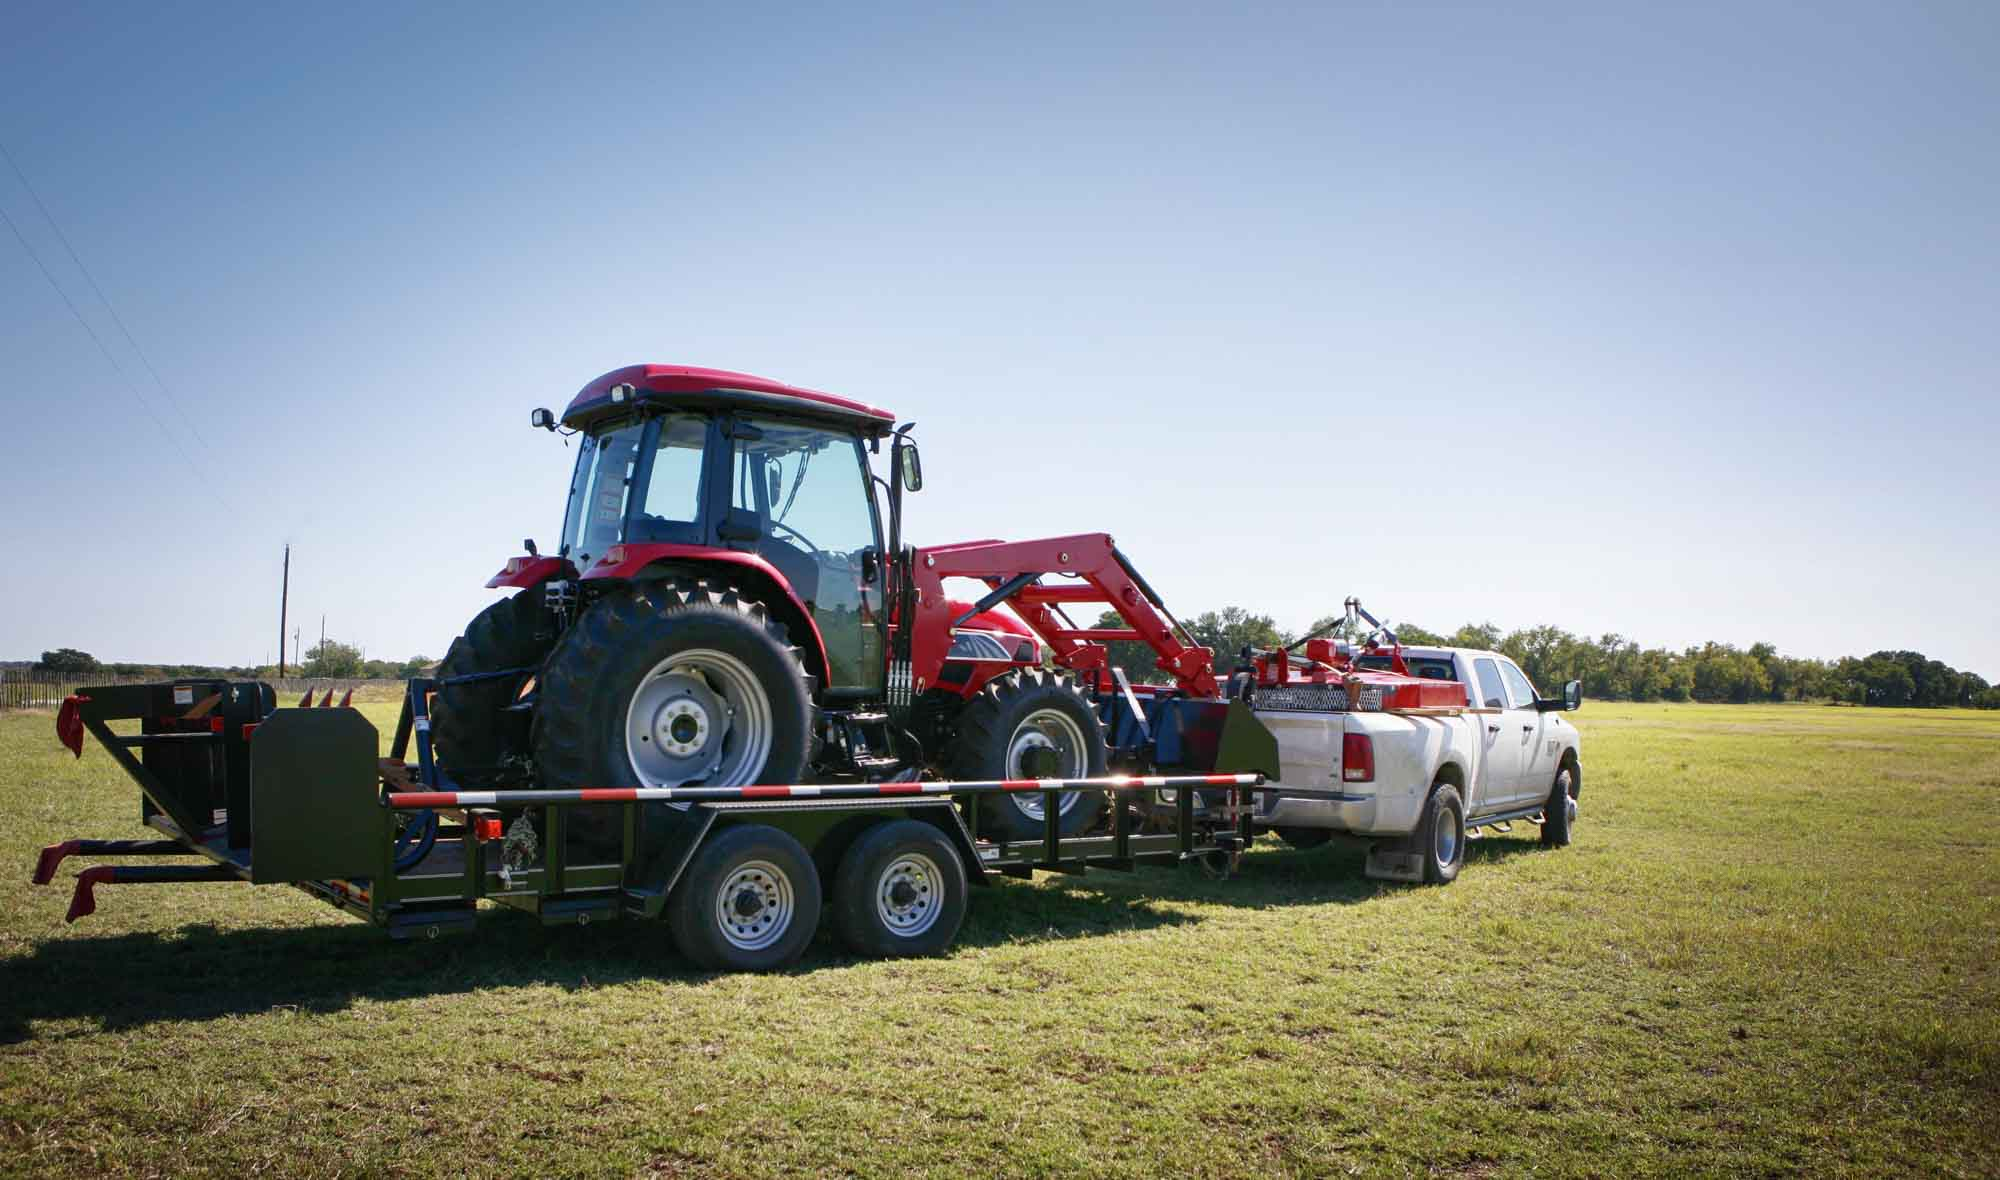 Texas farming: delivering/towing a large red tractor.